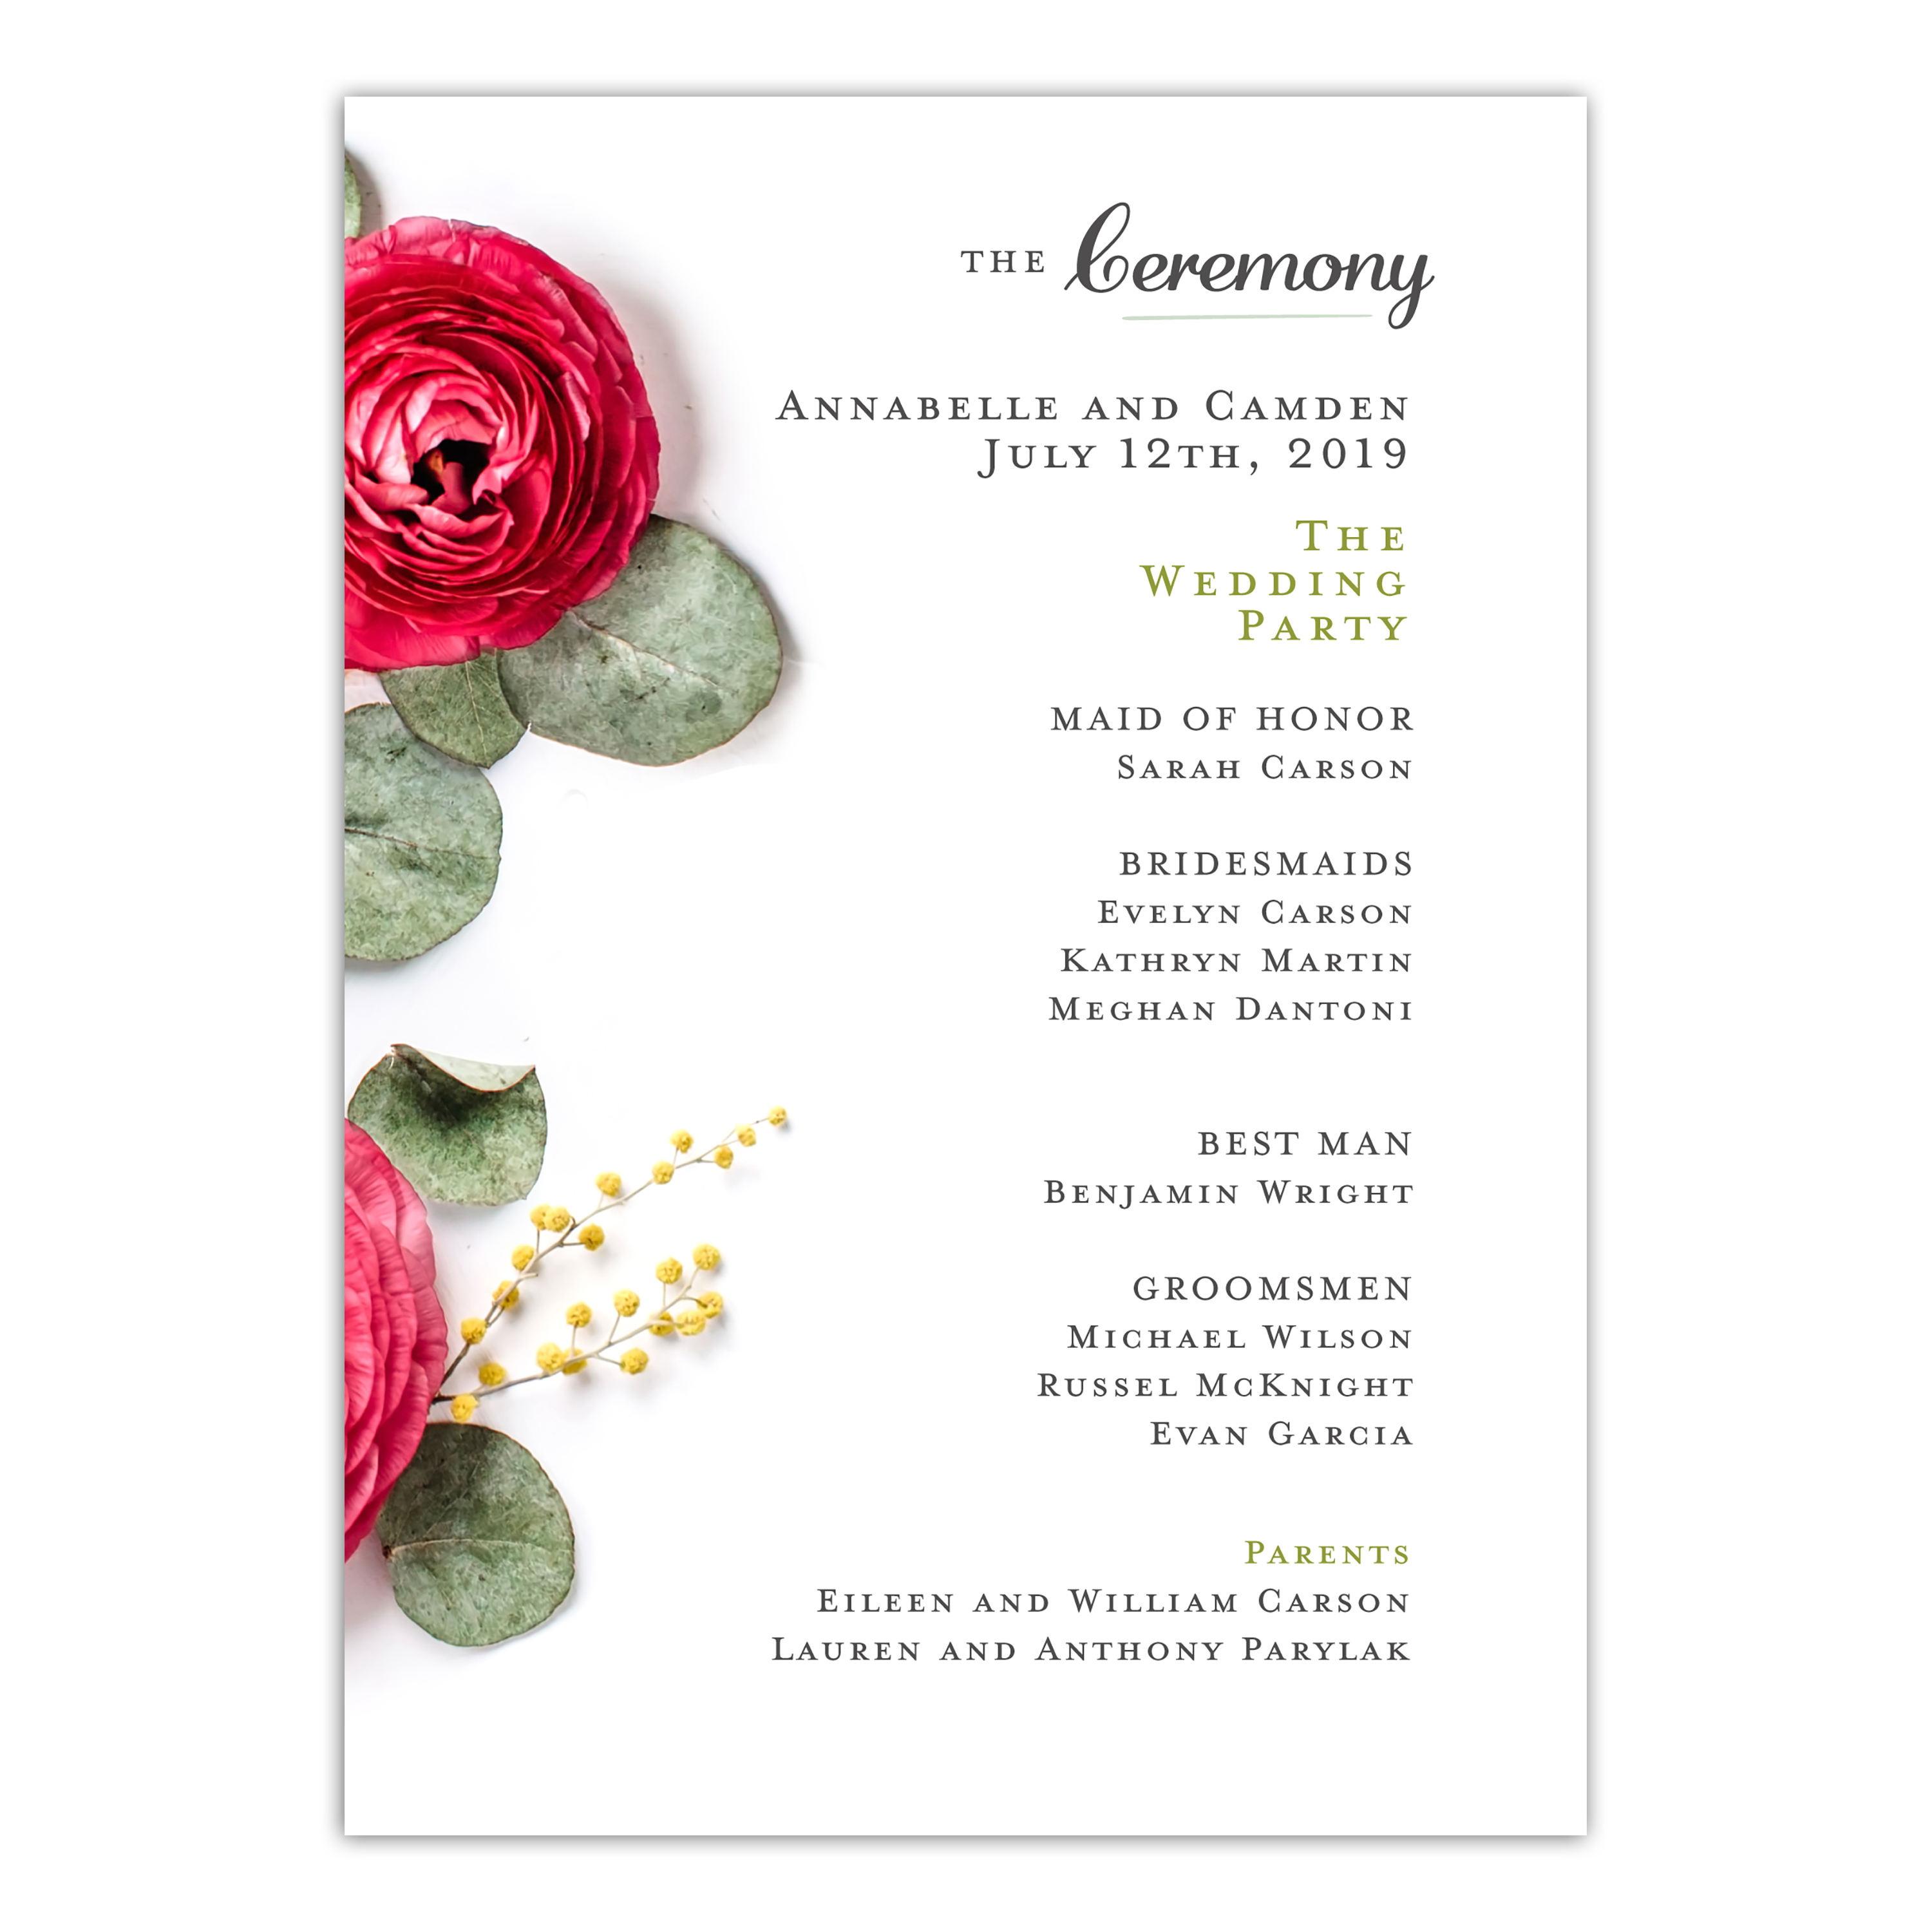 Personalized Wedding Program - Real Love - 5 x 7 Flat